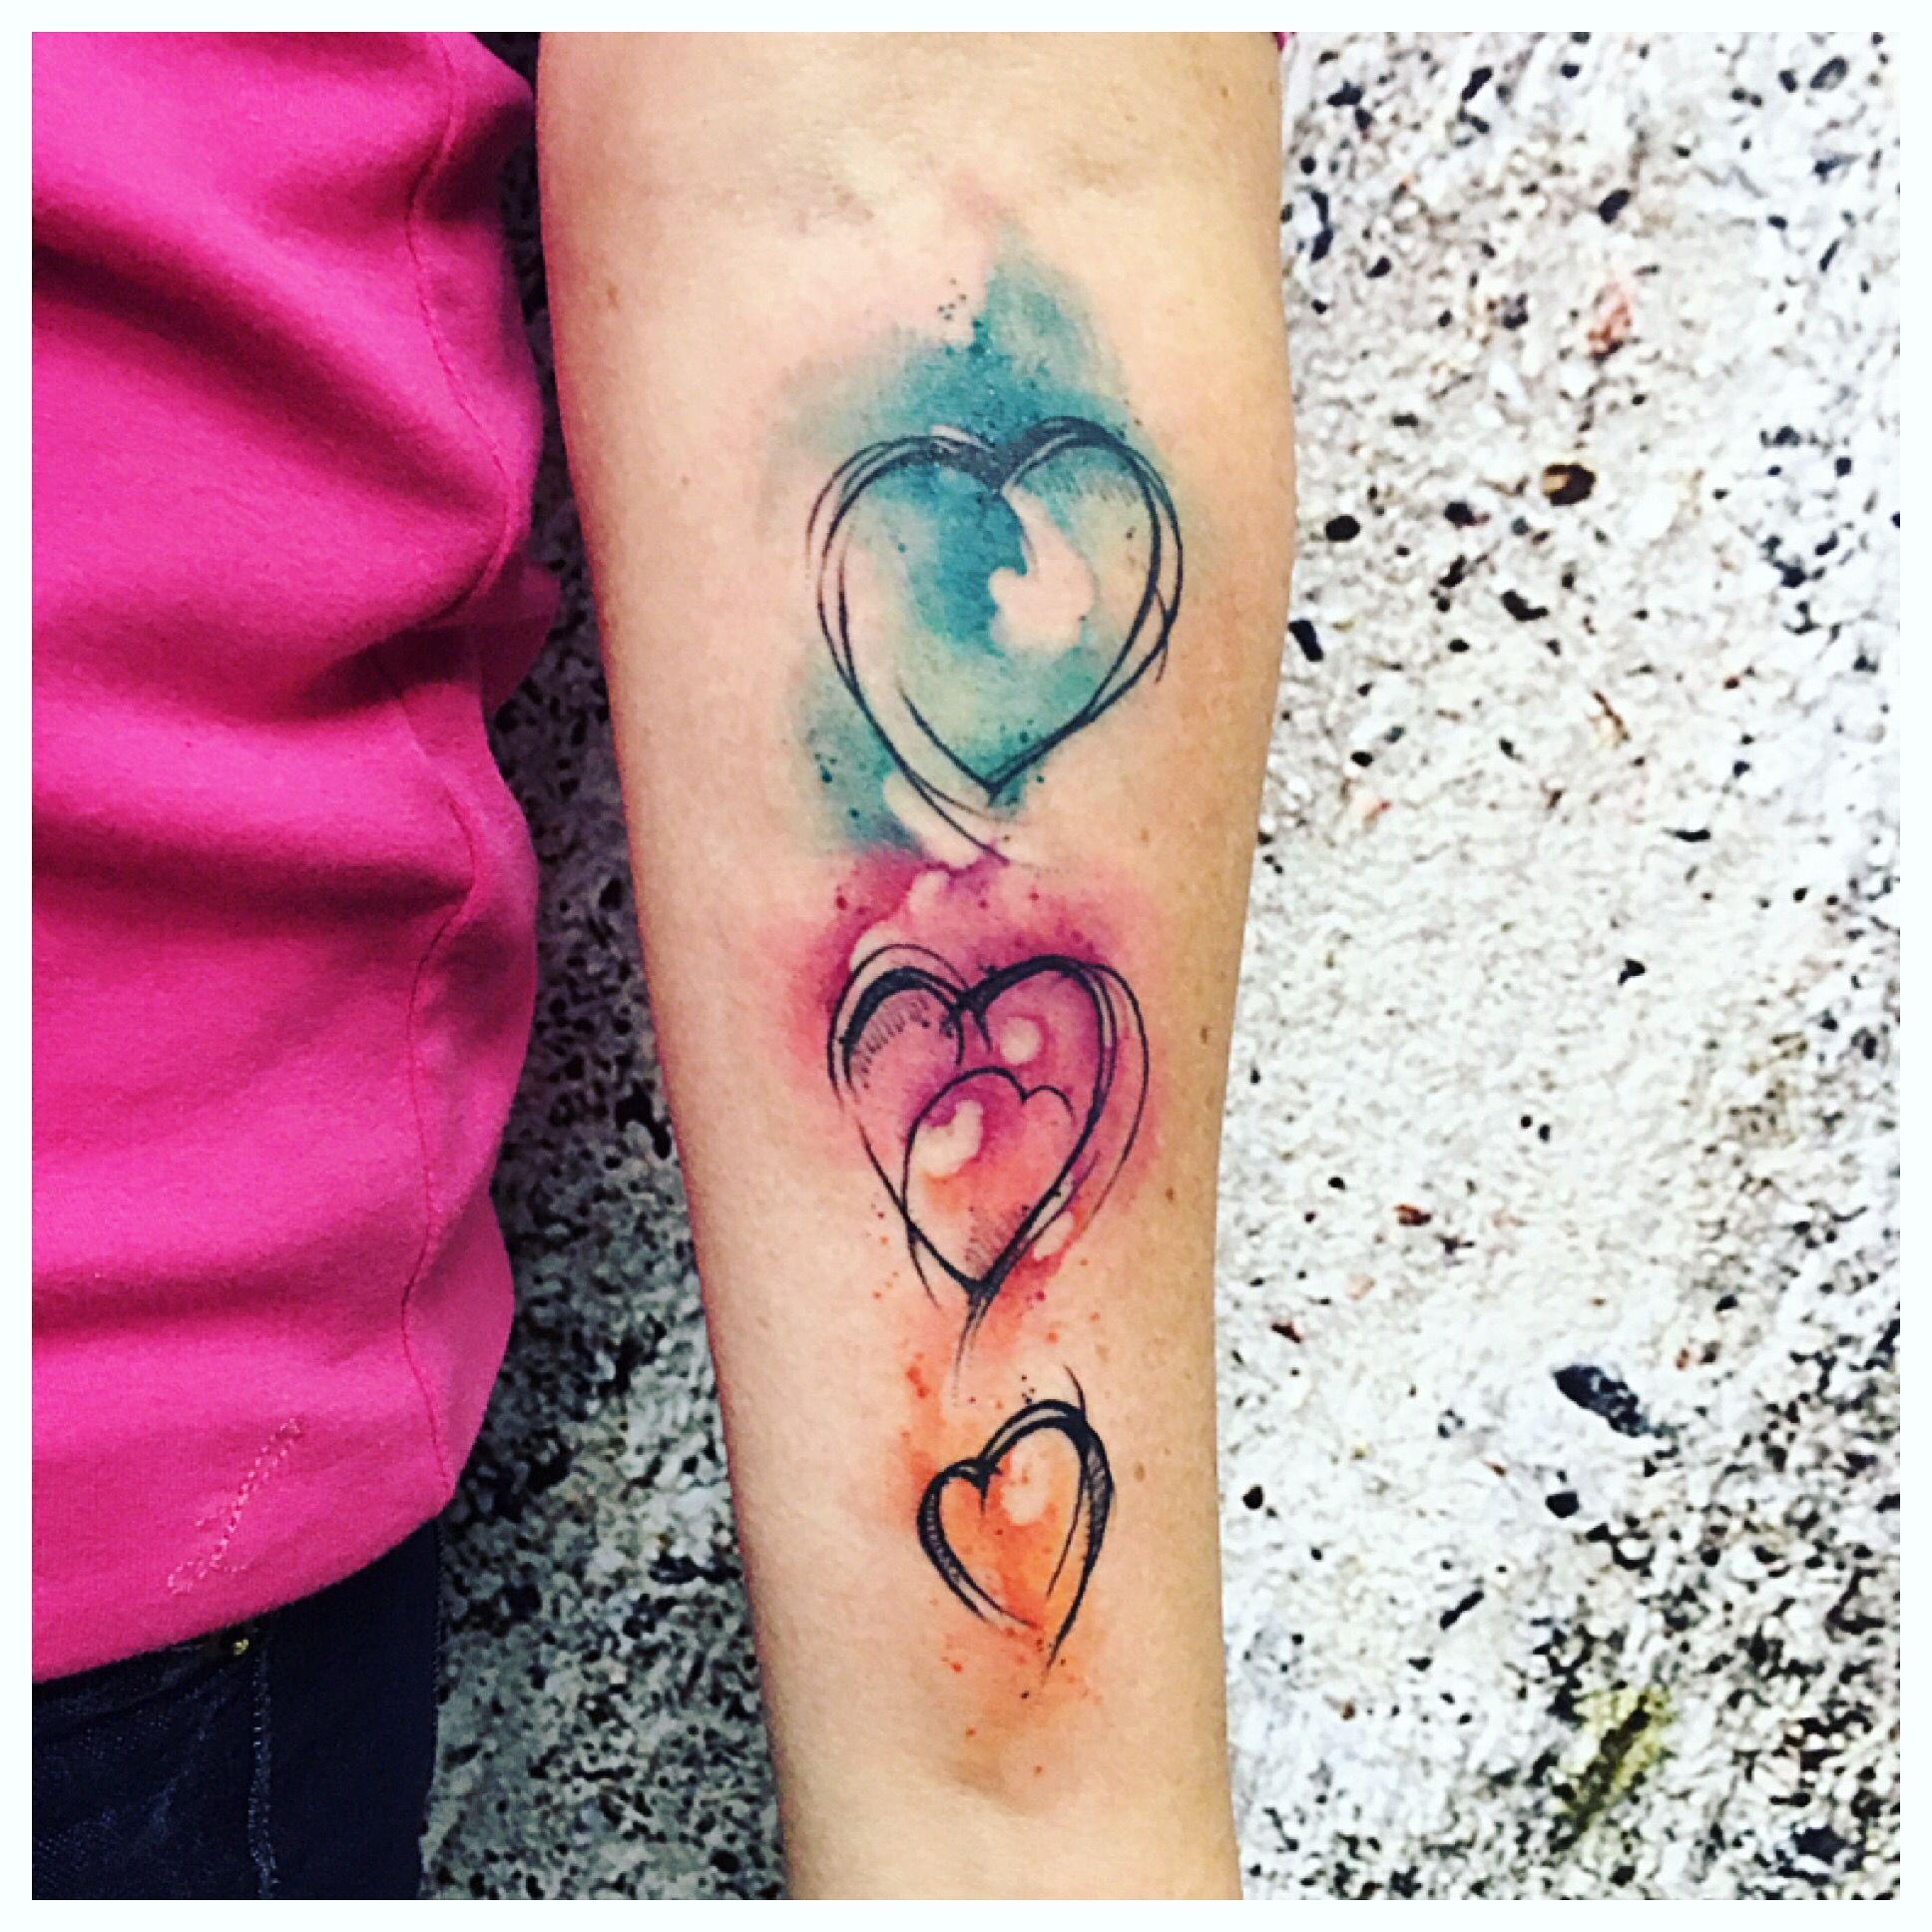 Watercolor Tattoo Hundertfarben Flensburg Watercolor Heart